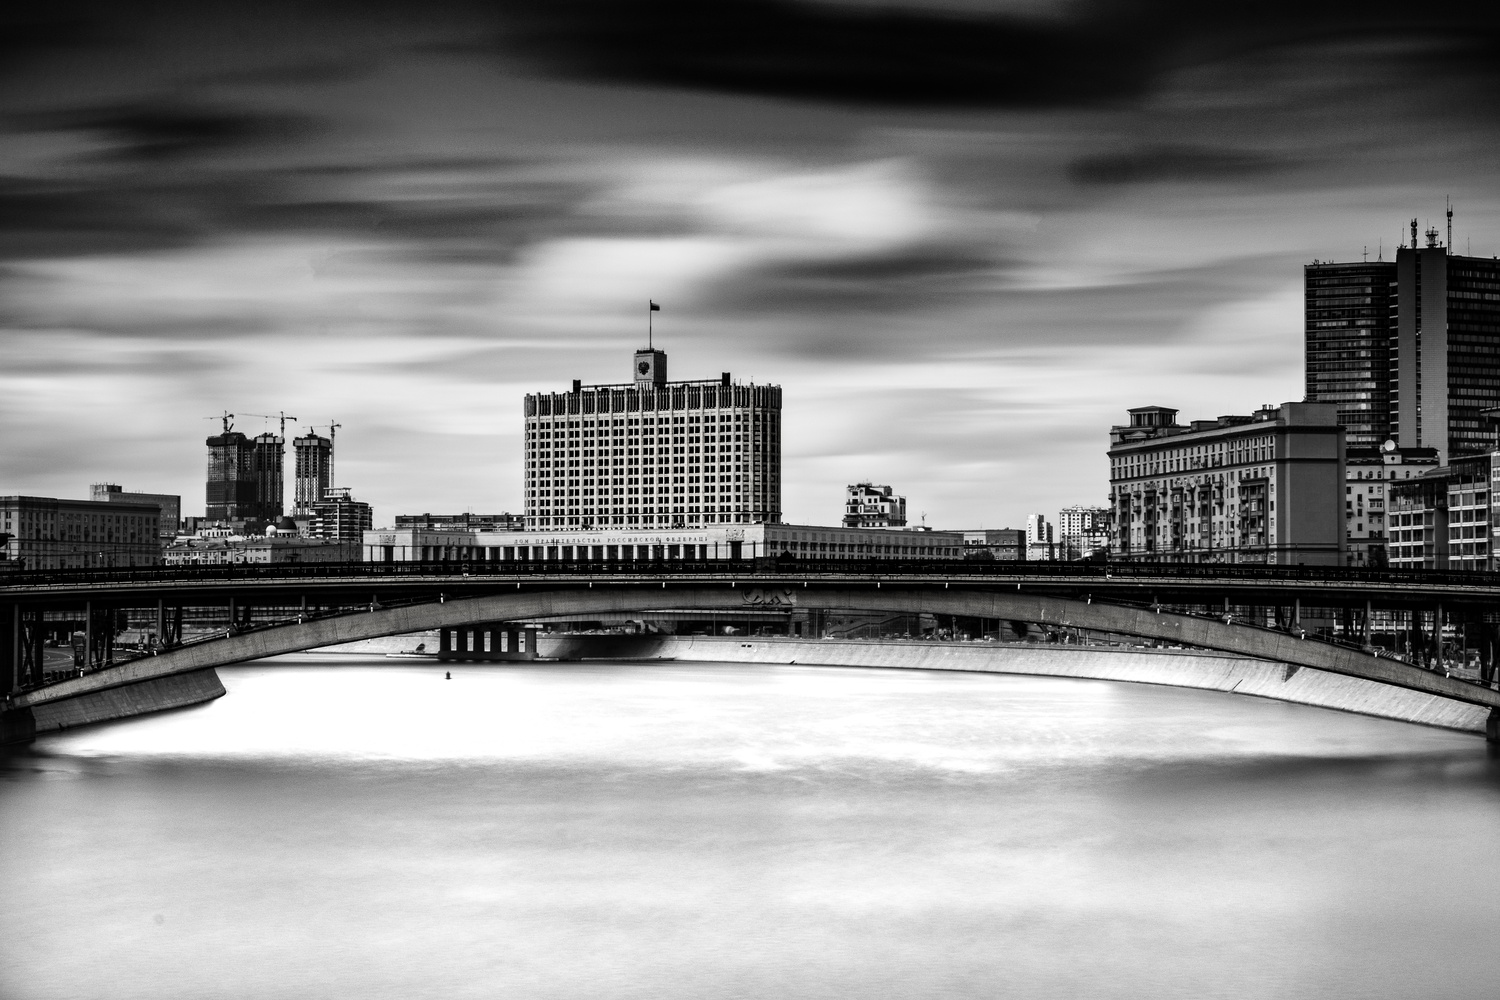 Moscow Duma by andrew audley